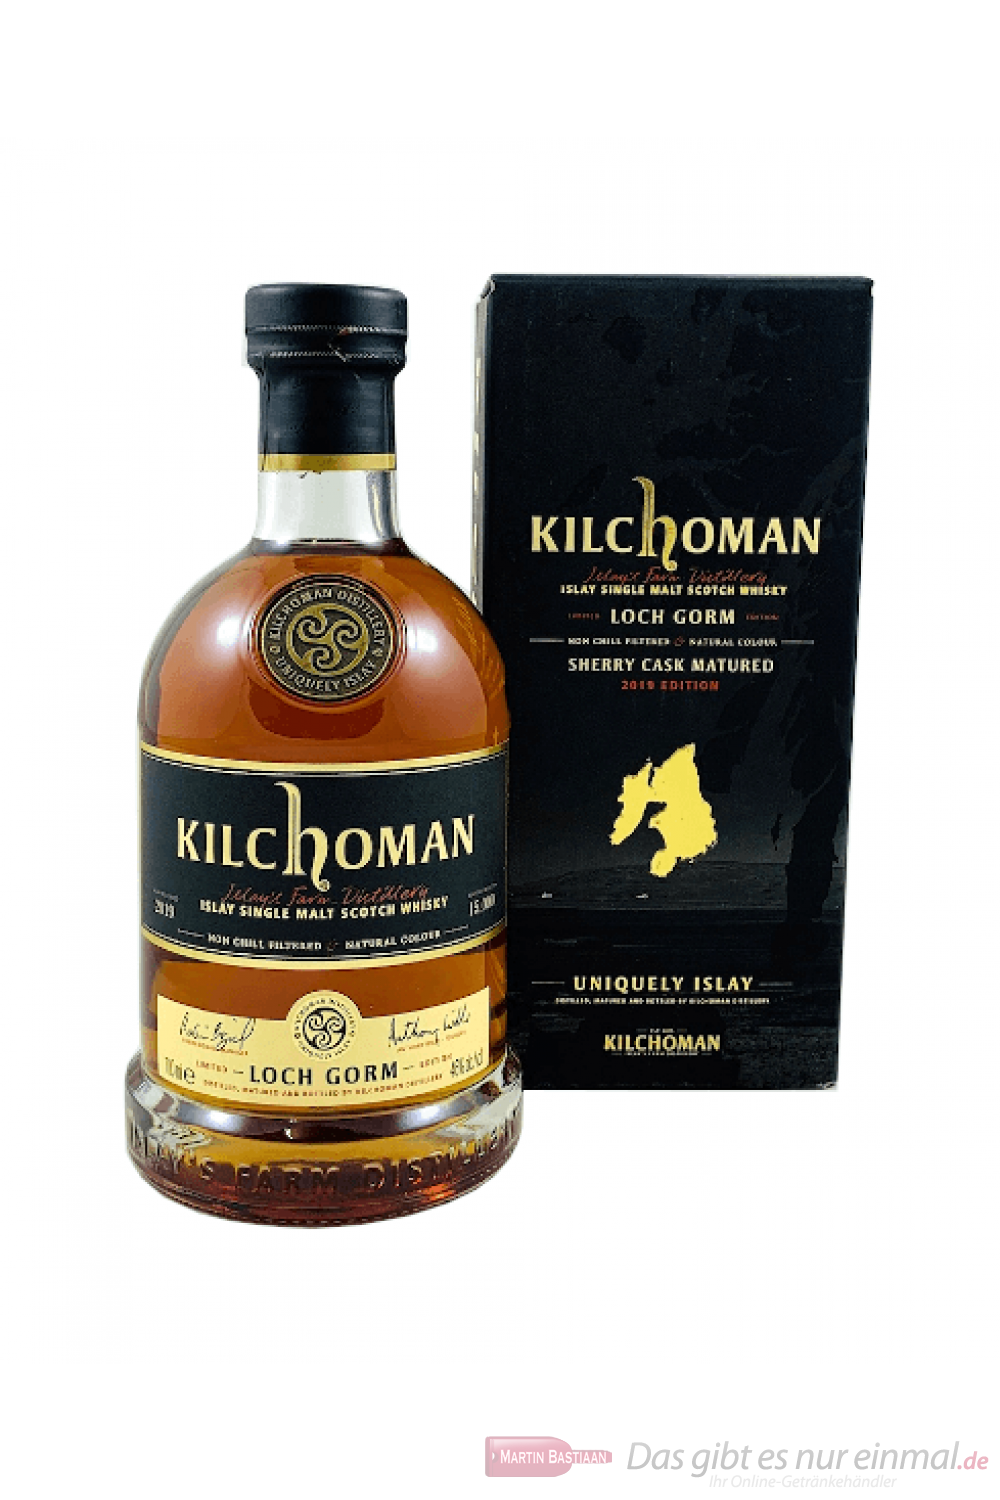 Kilchoman Loch Gorm Sherry Release 2019 Single Malt Scotch Whisky 0,7l